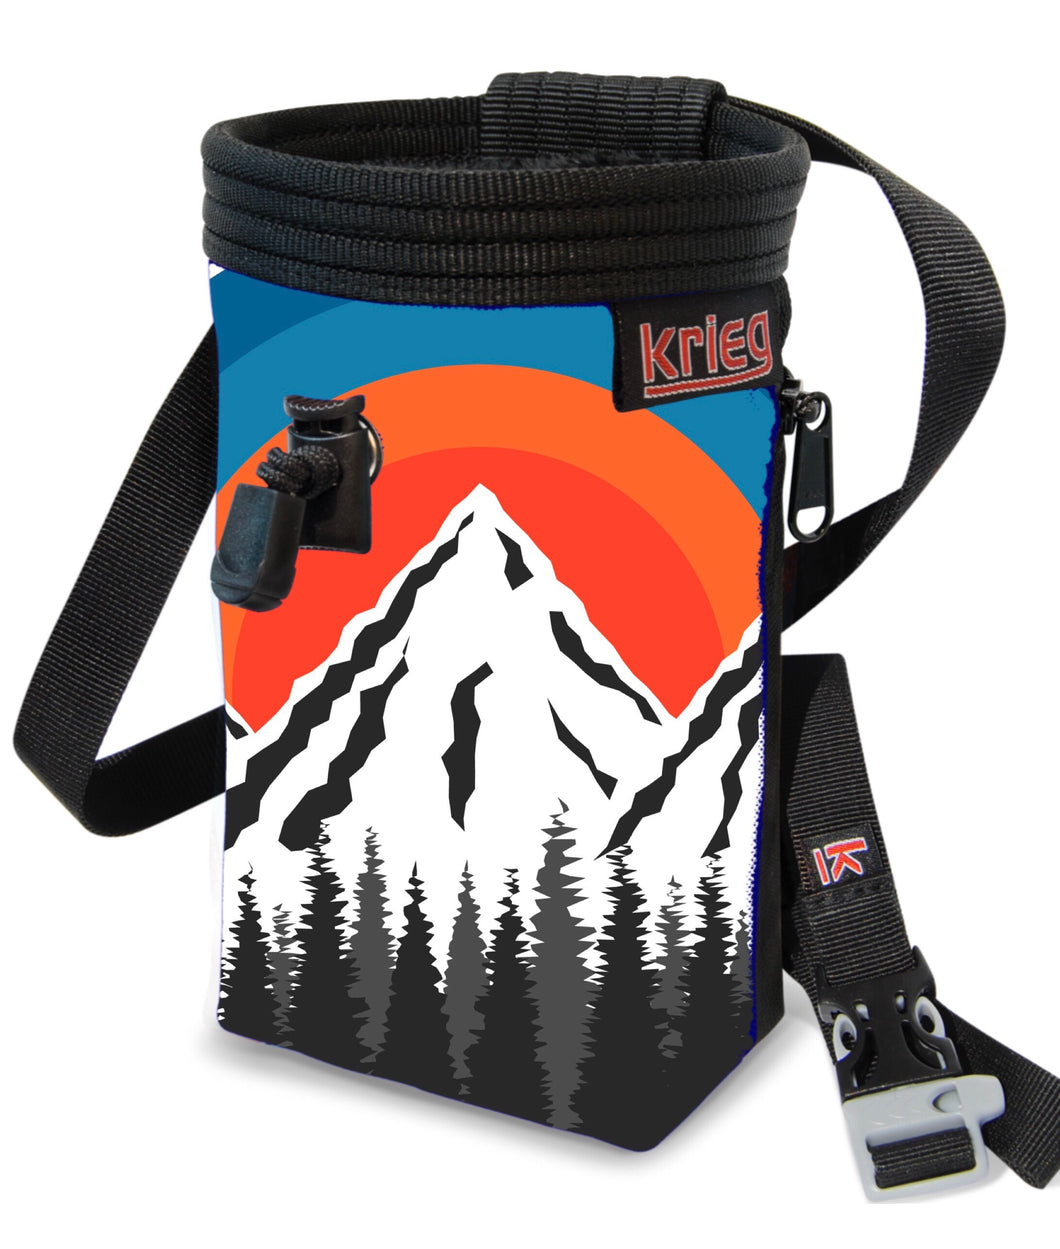 Mountains 2.0 Climbing Chalk Bag Krieg